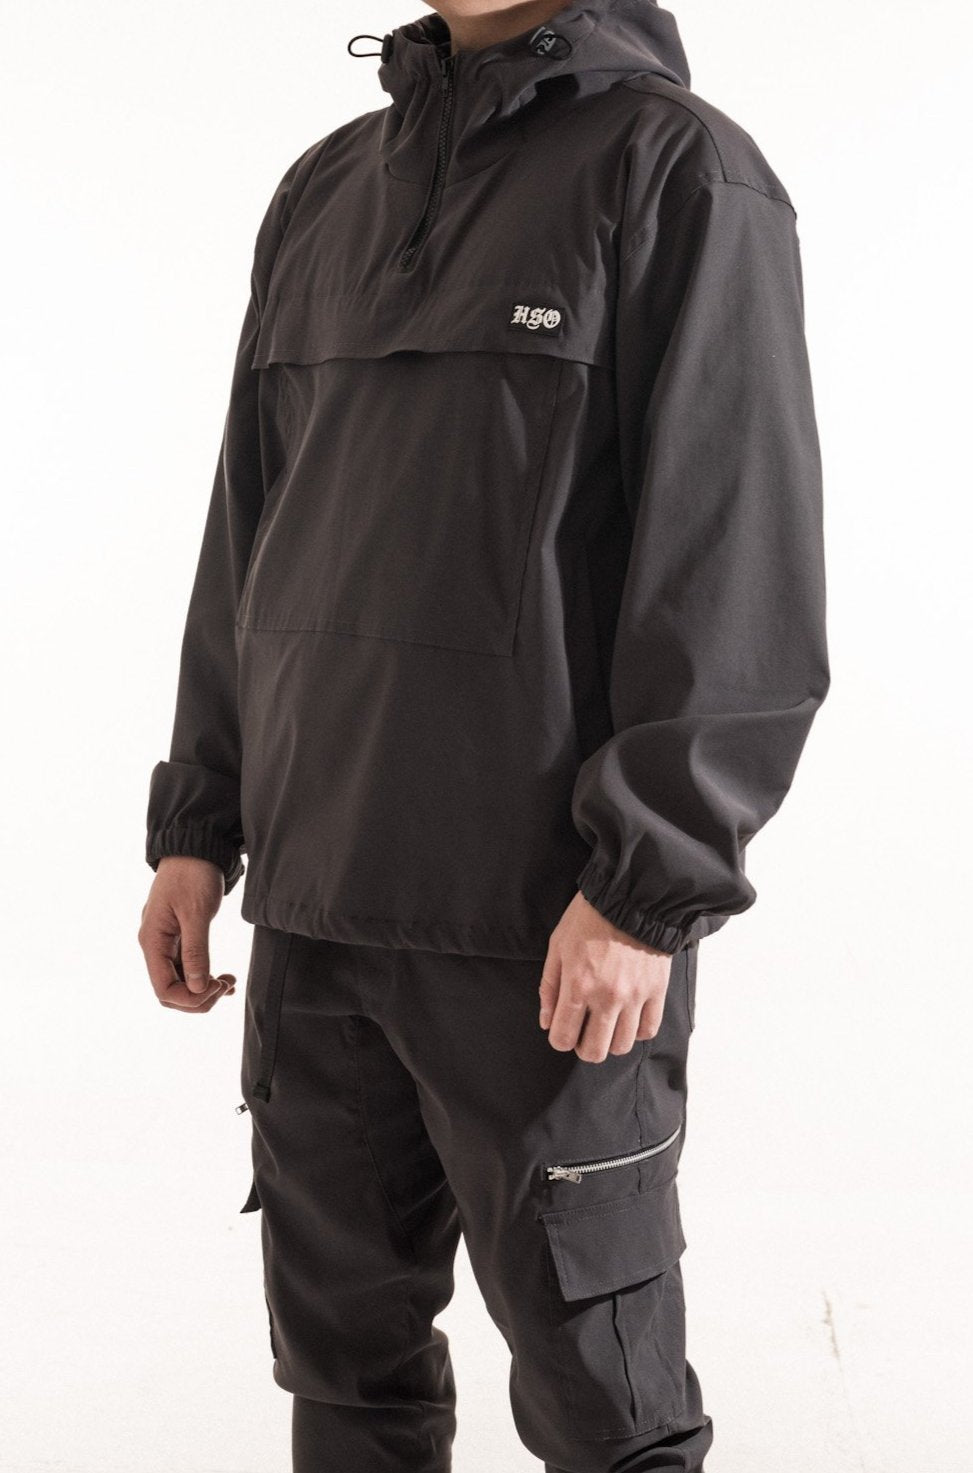 TECH WINDBREAKER JACKET - CHARCOAL